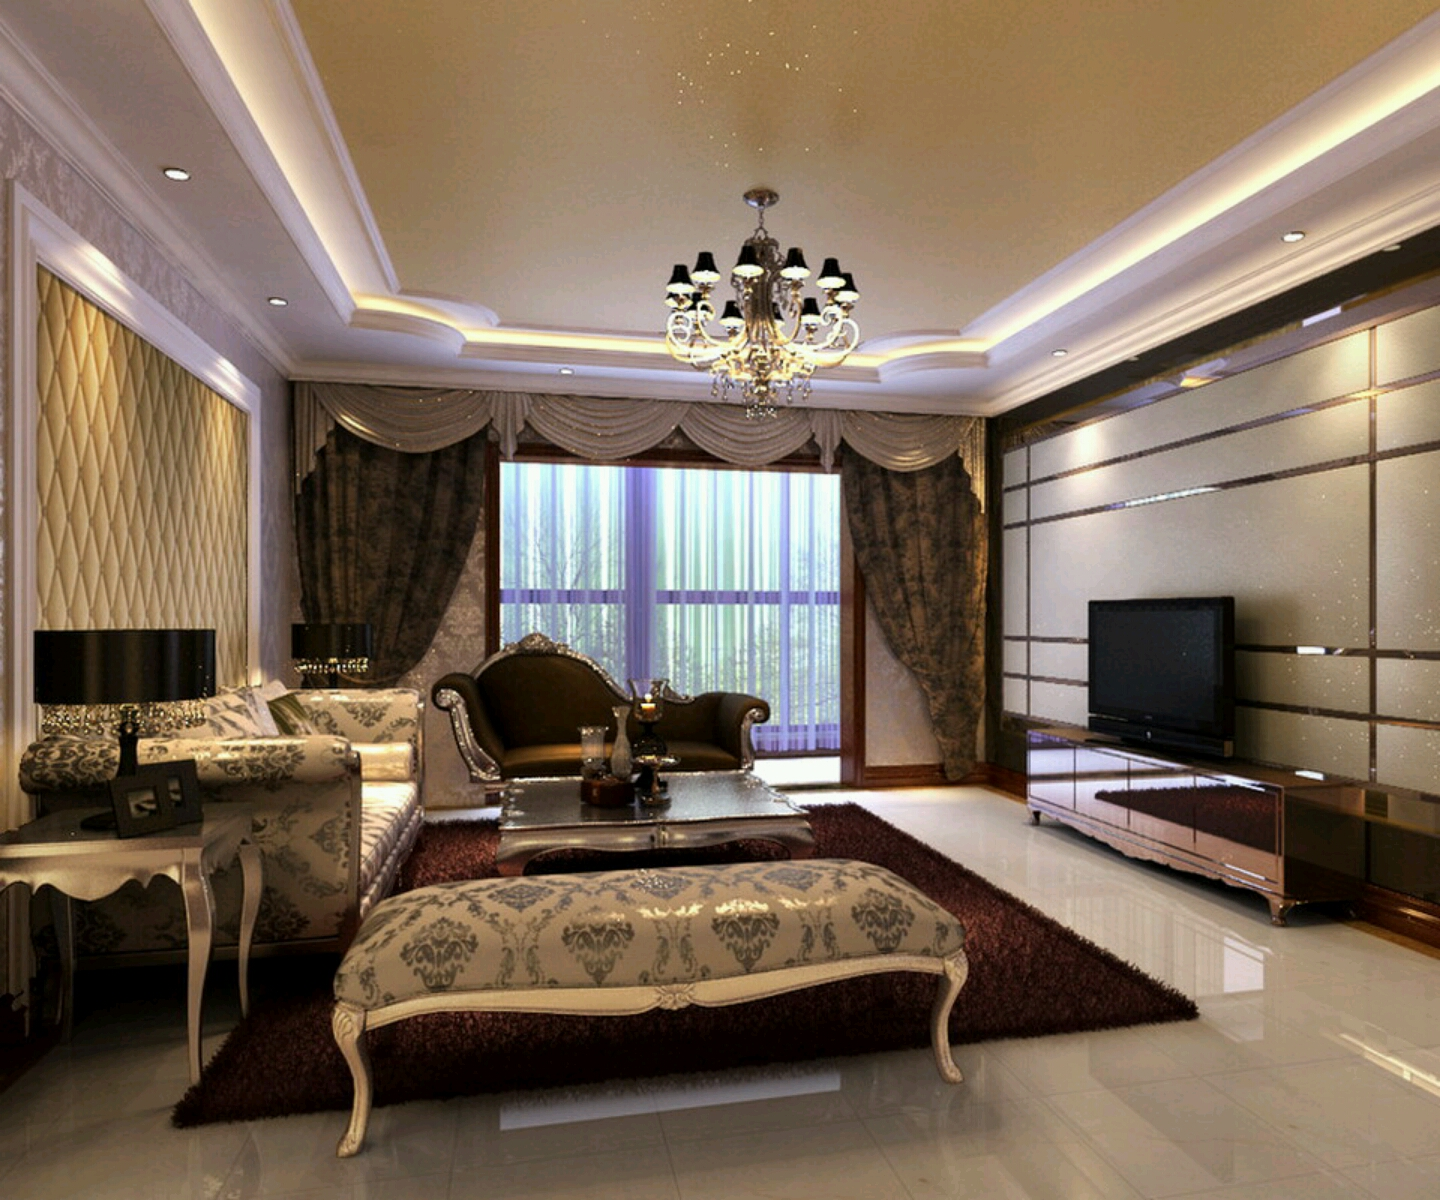 New home designs latest luxury homes interior decoration for Home room ideas